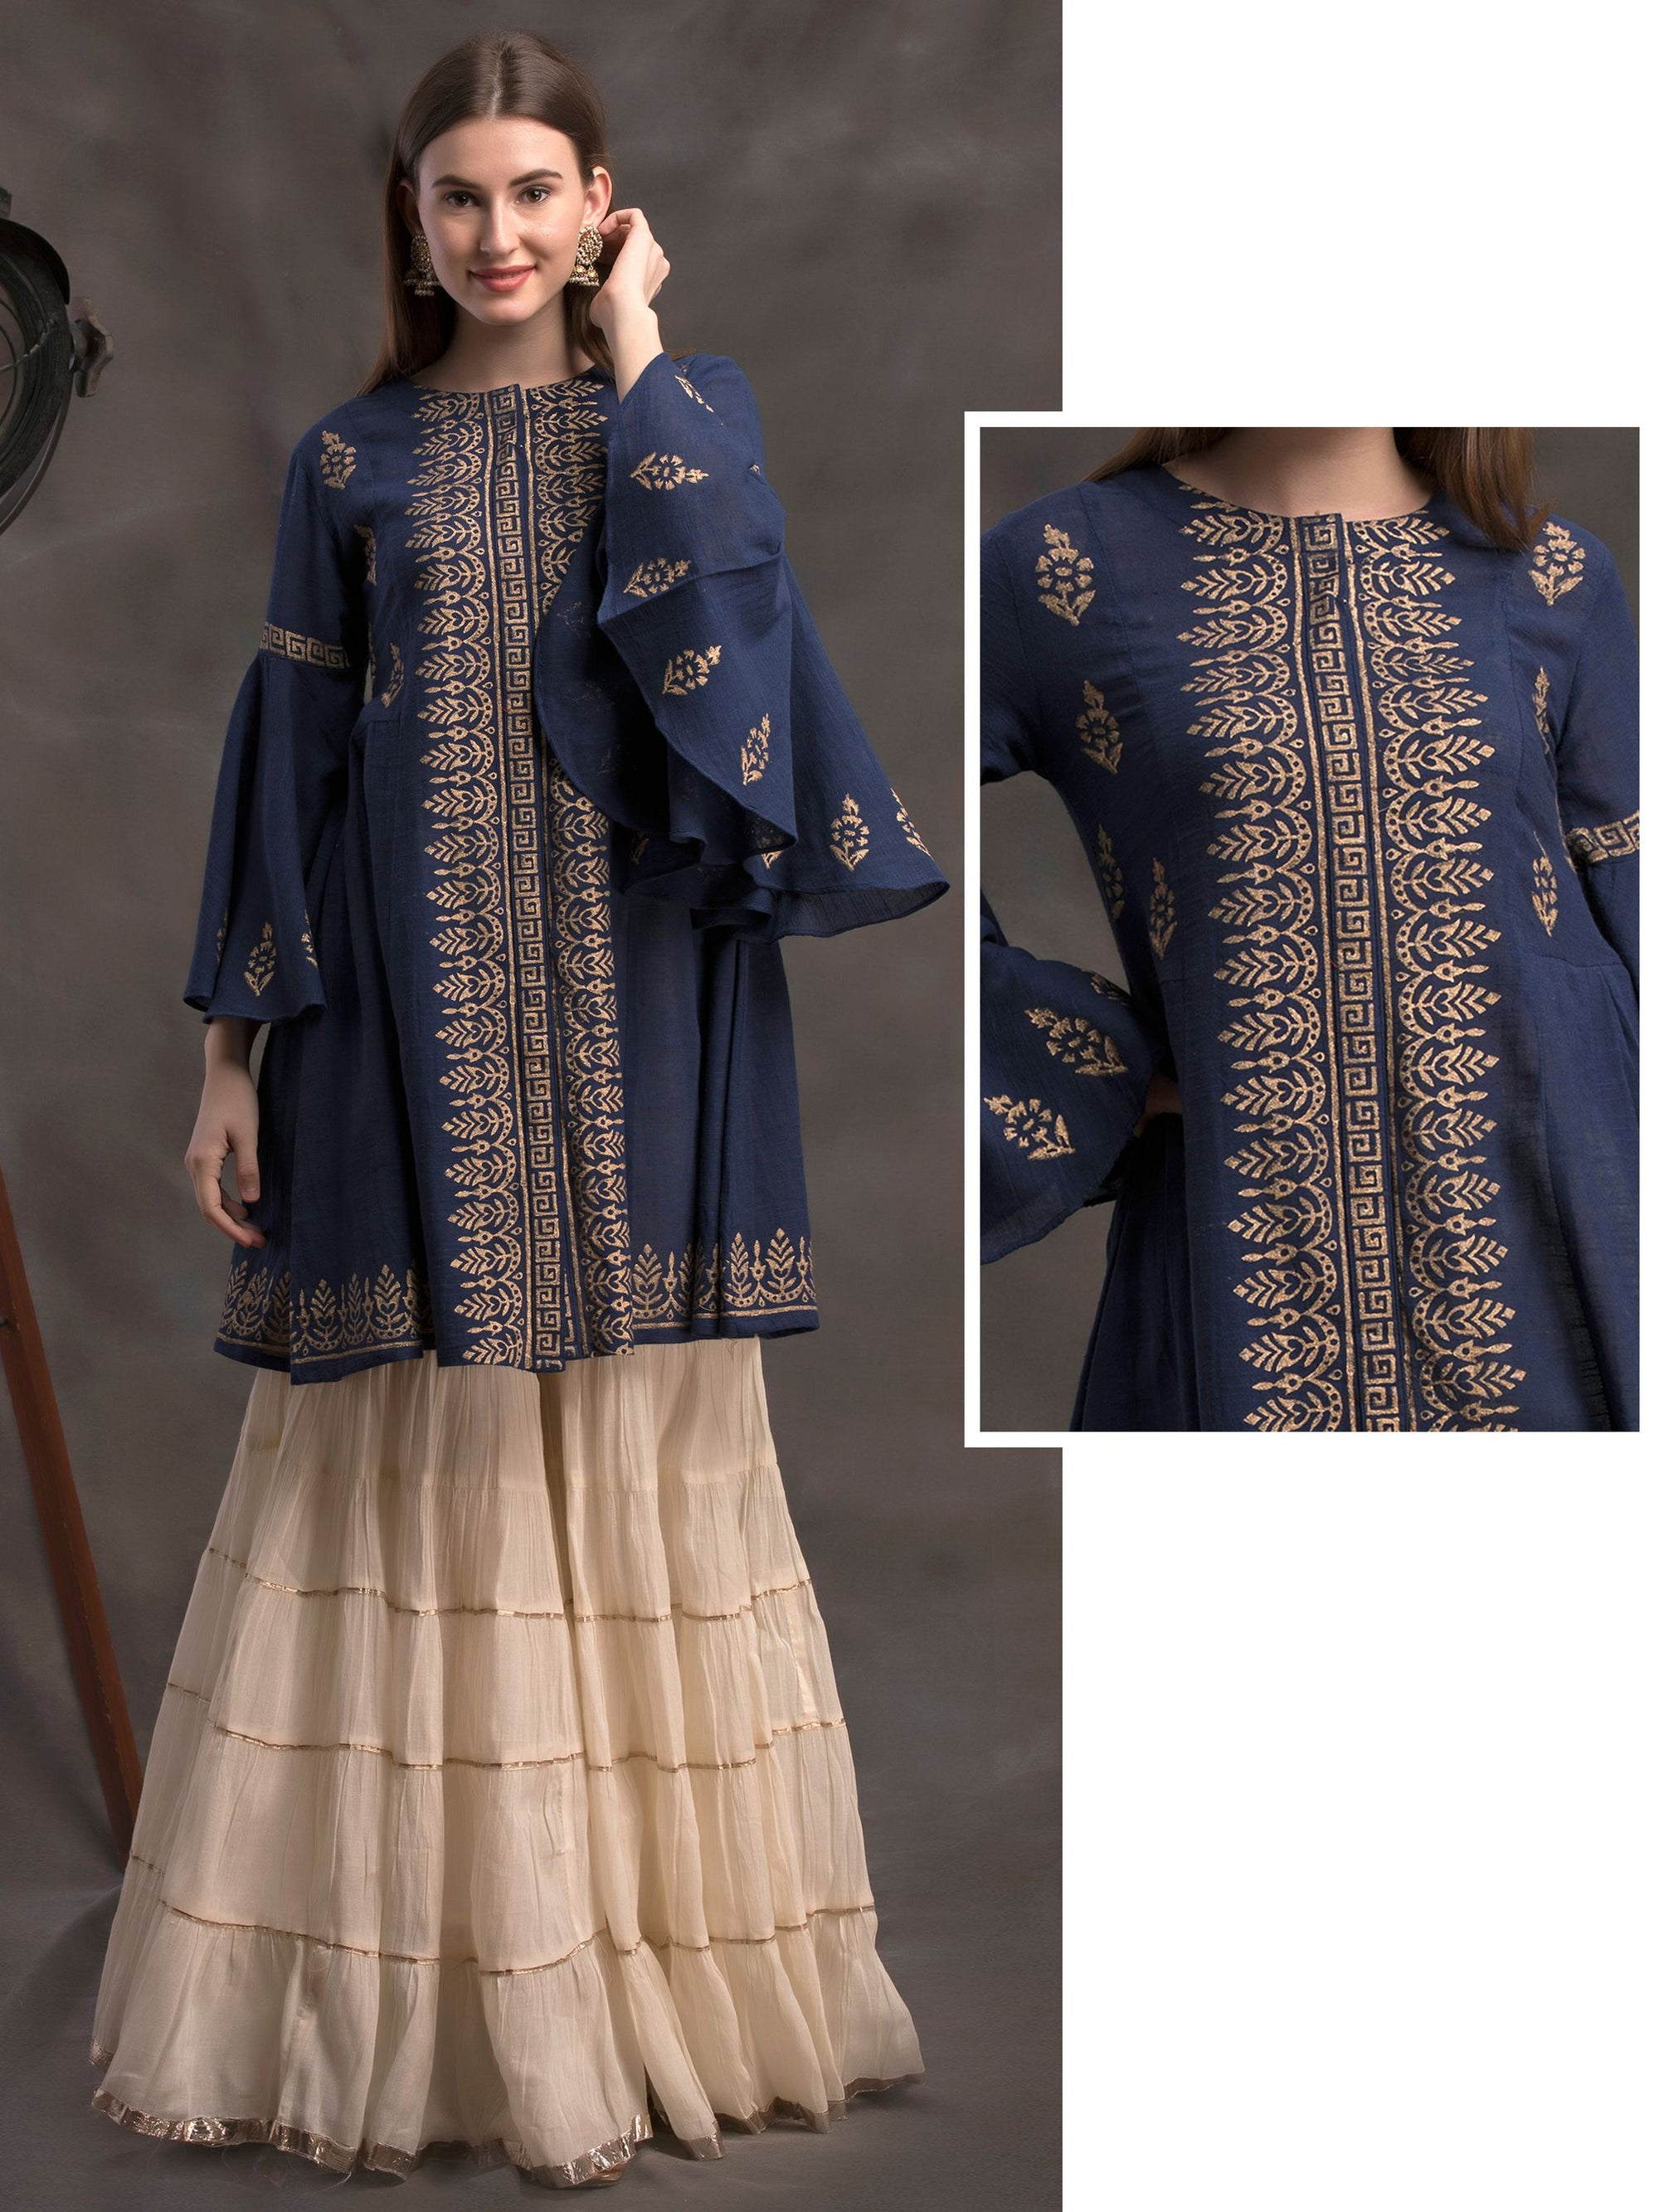 Gold Foil Printed & Ruffle Sleeved Handloom Cotton Panel Kurti – Navy Blue